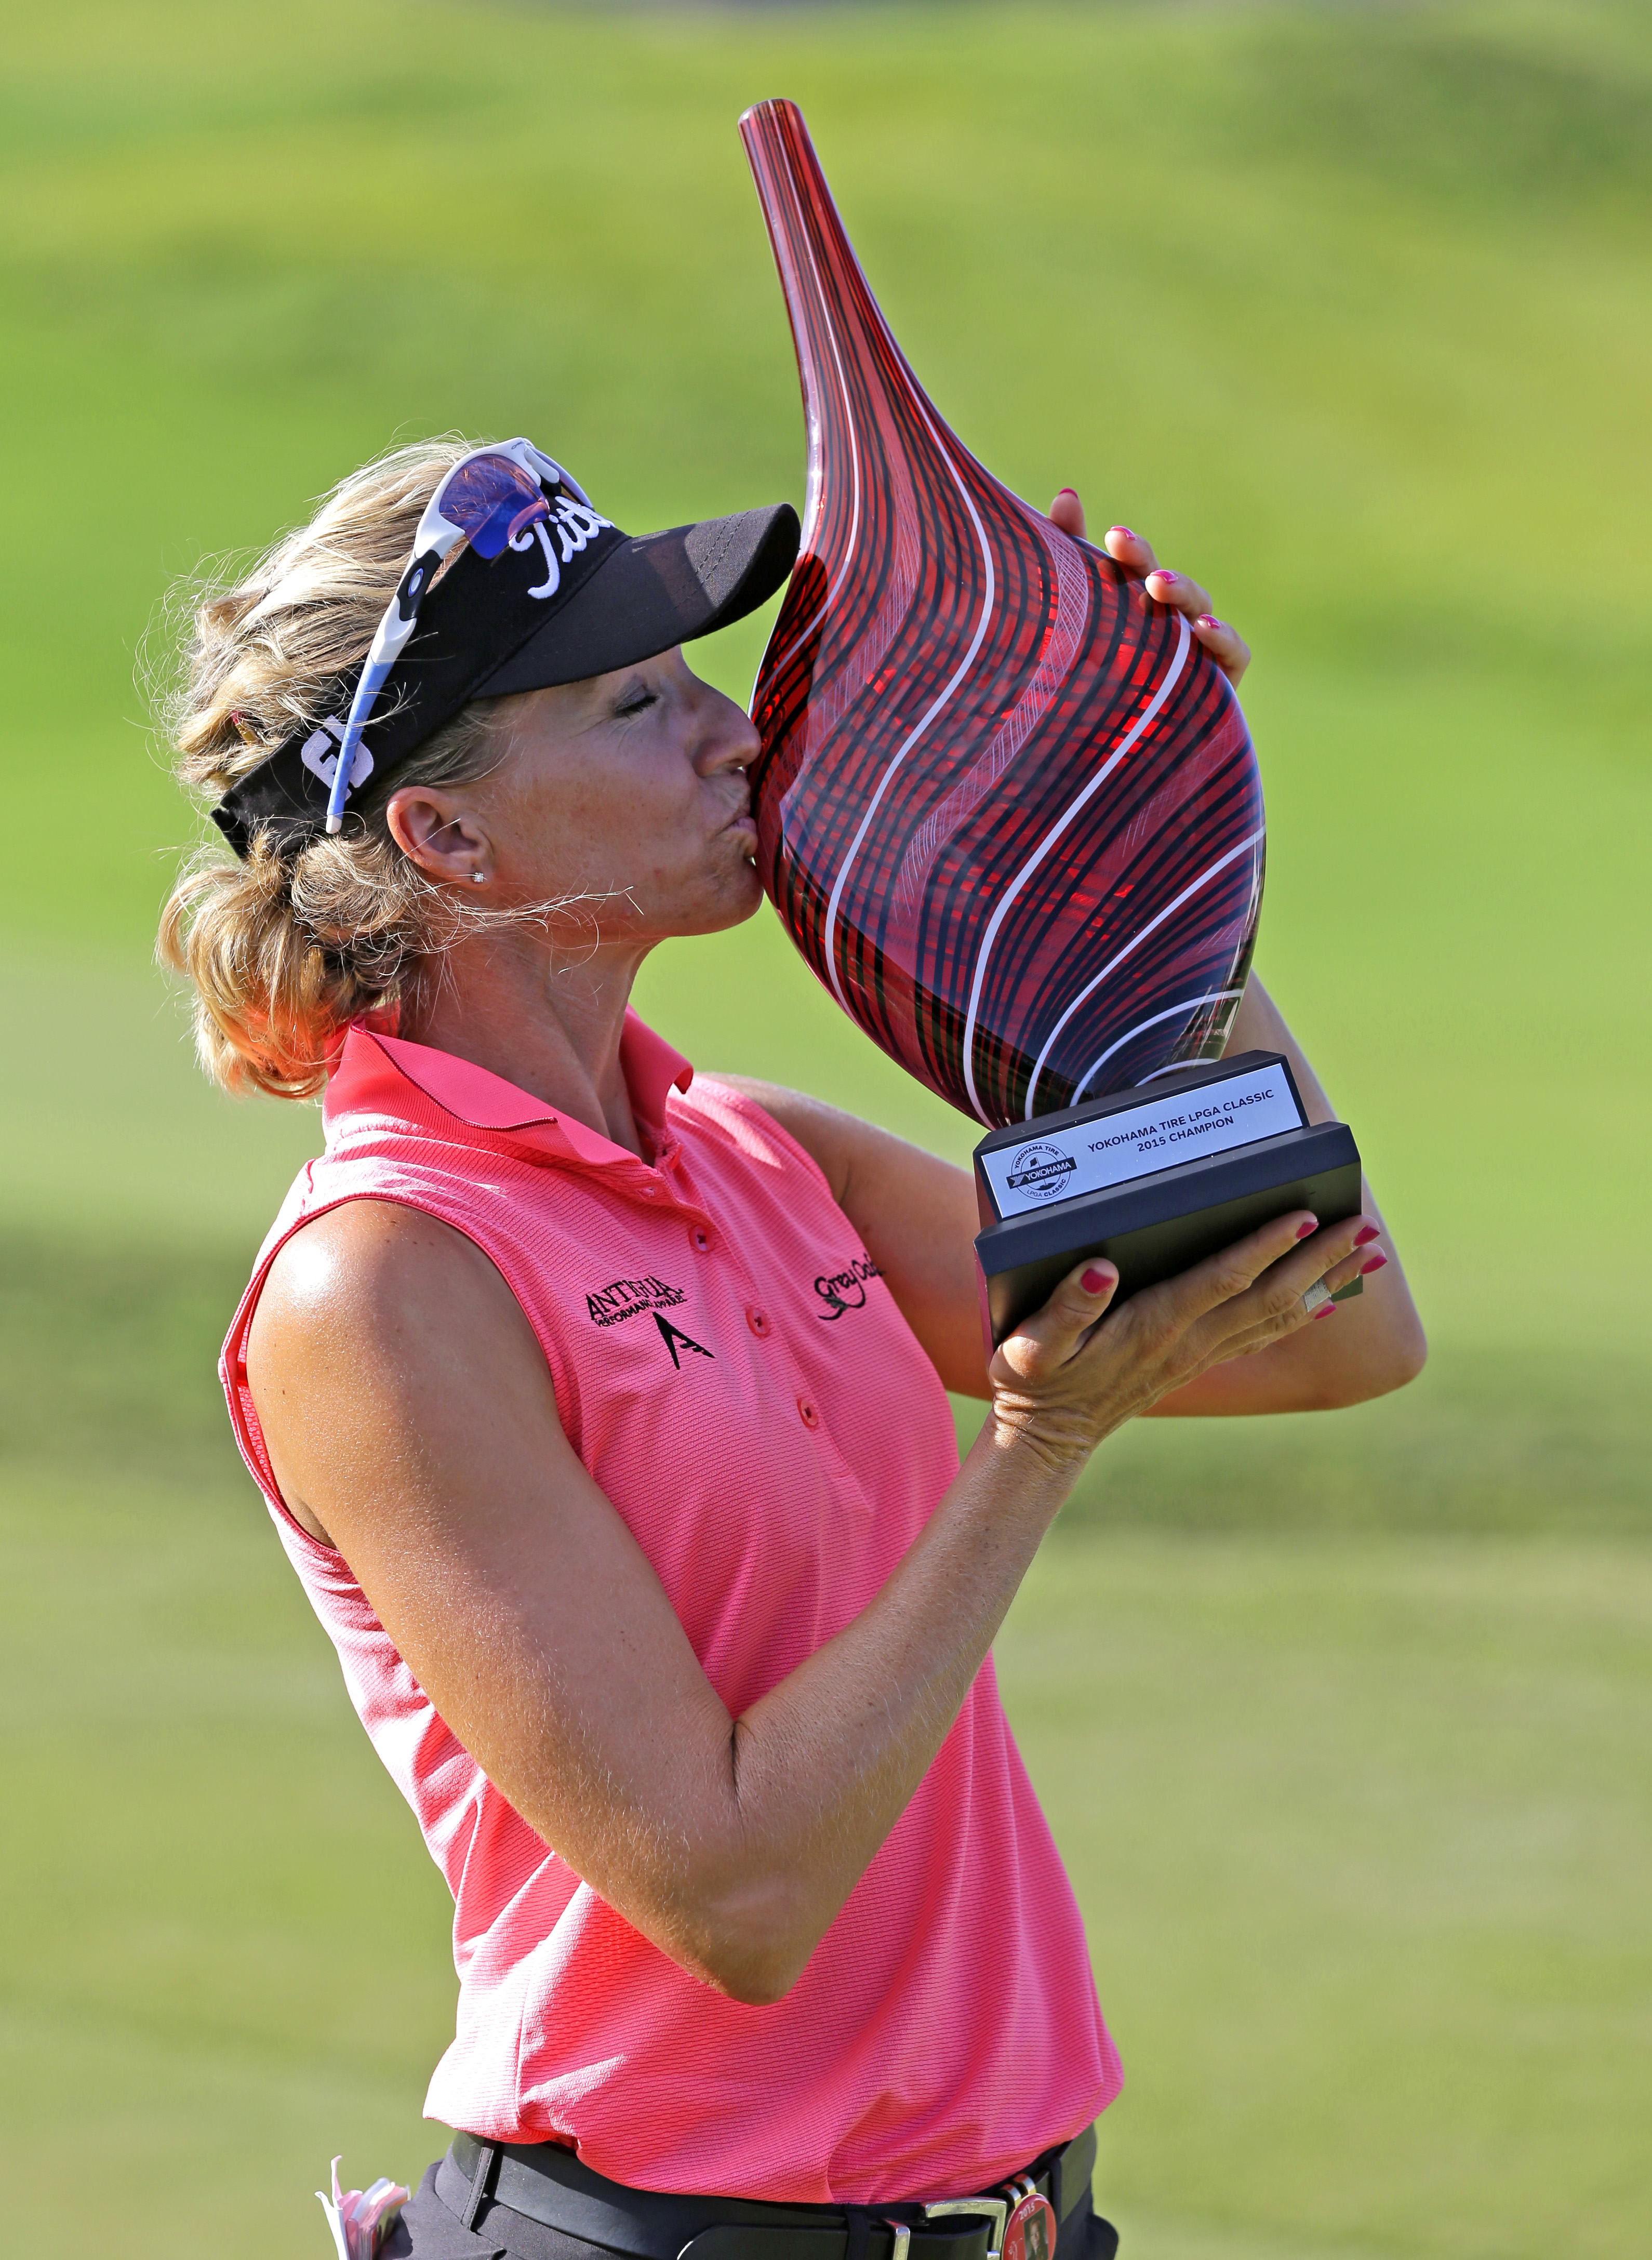 Kris Tamulis kisses the trophy after winning the Yokohama Tire LPGA Classic golf tournament, Sunday, Aug. 30, 2015, in Prattville, Ala. (AP Photo/Butch Dill)